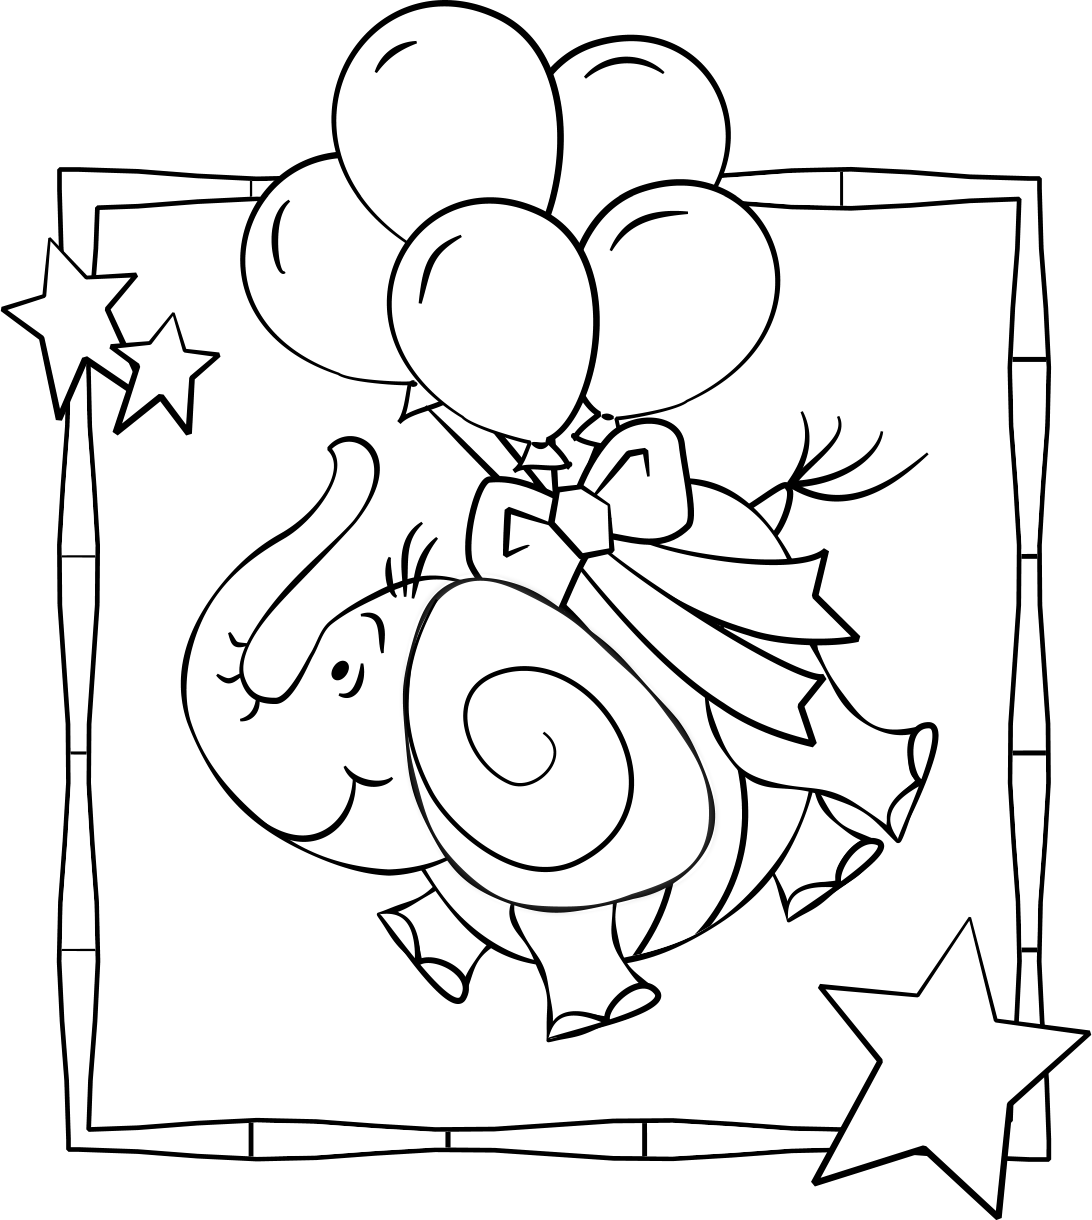 Download your FREE digi stamps from Cuddly Buddly from